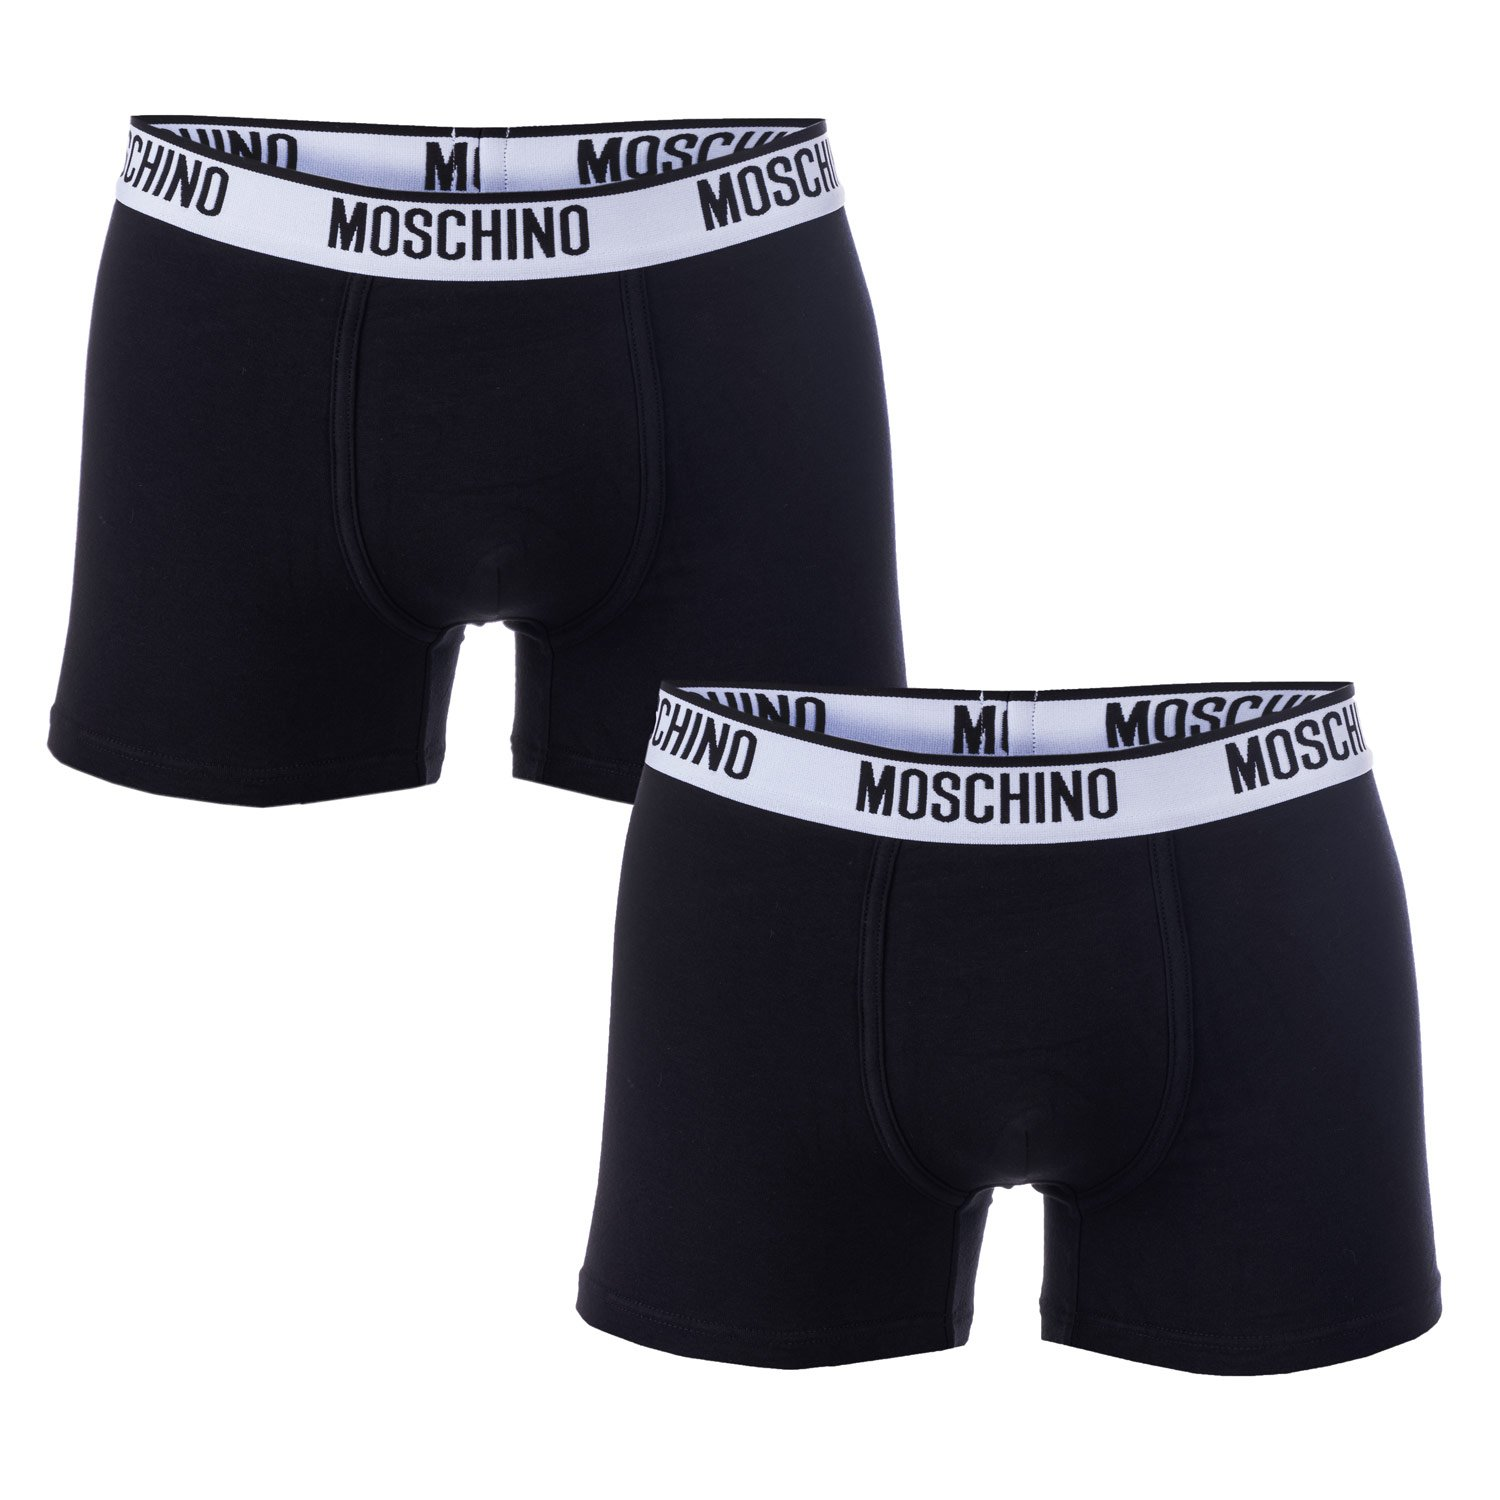 Moschino Mens 2 Pack Boxer Shorts in Black- Set Comprises 2 Pairs Boxer Short